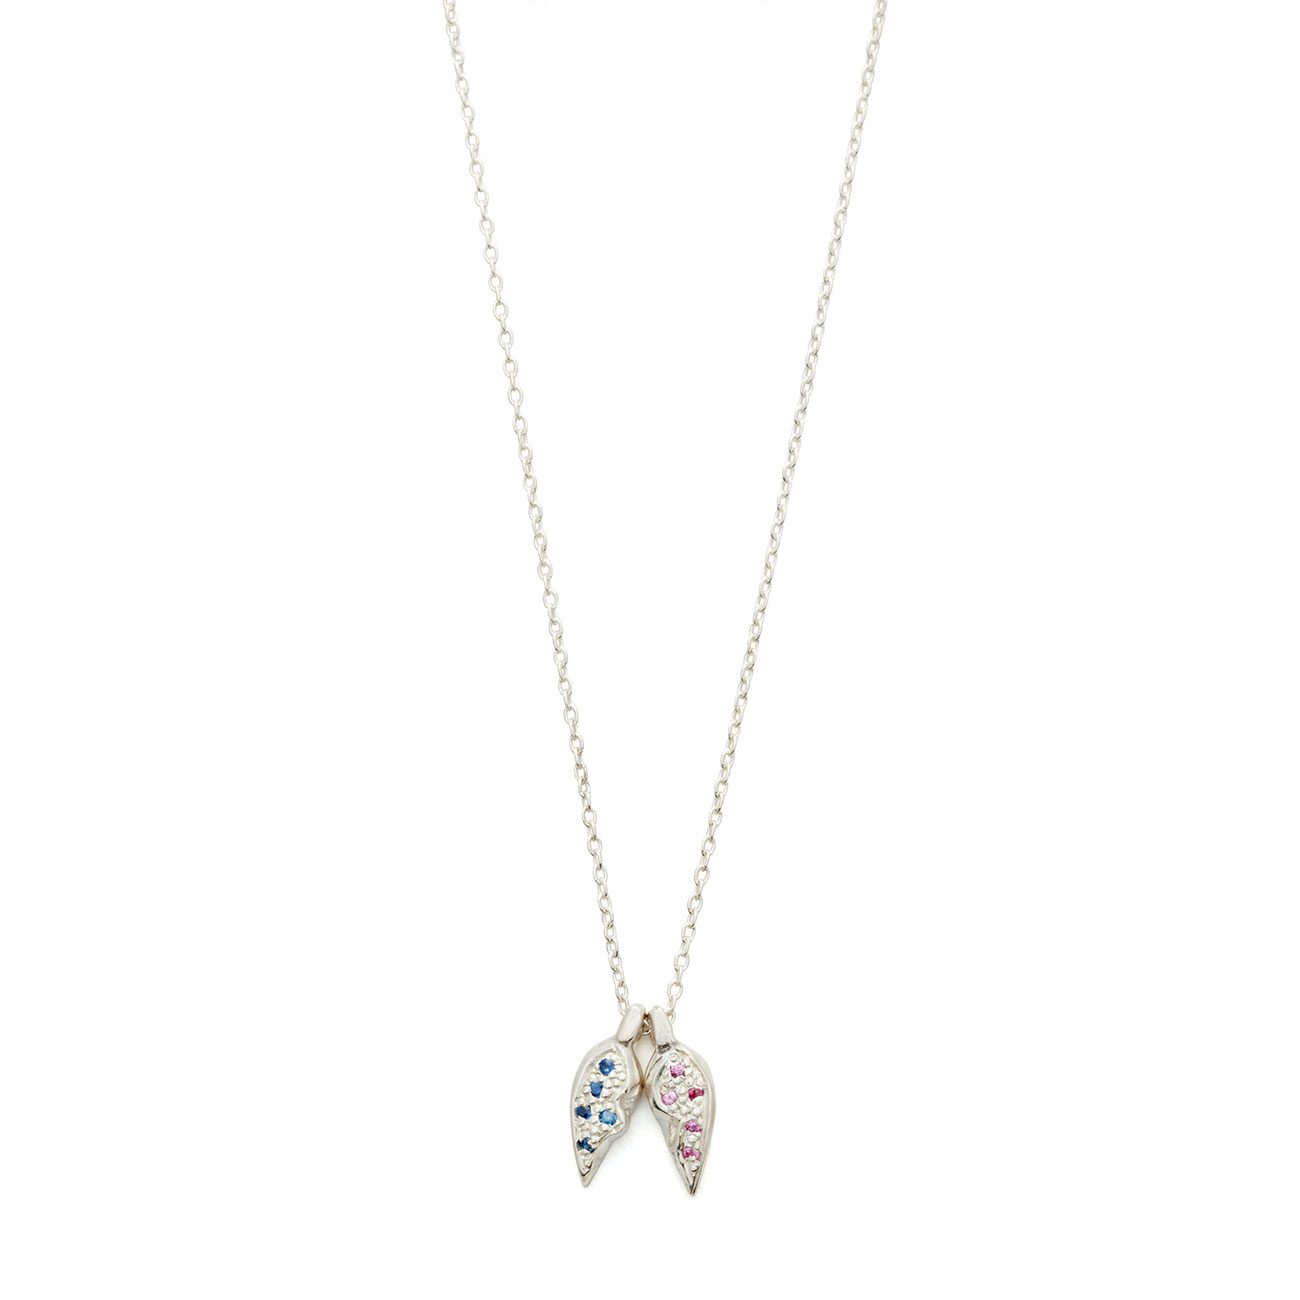 Sterling Silver Heart Halves Necklace With Blue And Pink Sapphires - Elisa Solomon